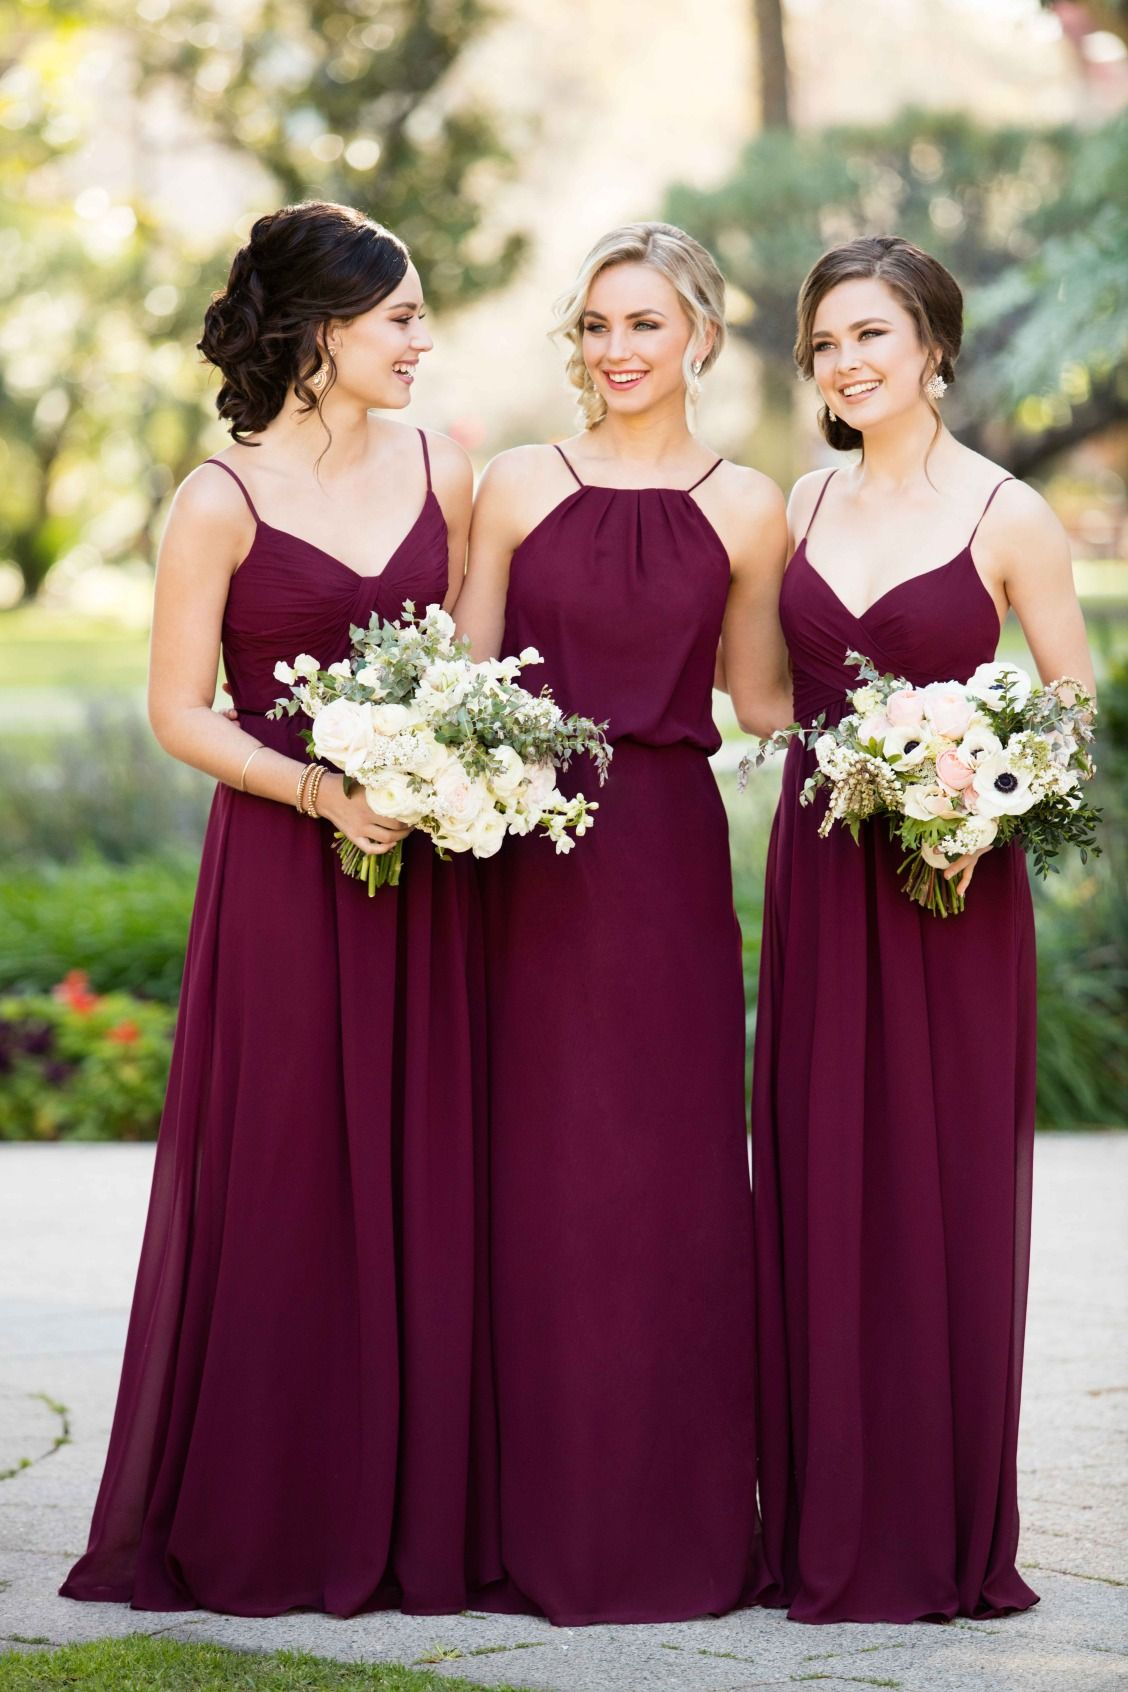 Burgundy Bridesmaids Dress for a mix and match bridal party! ae8f563b82fd